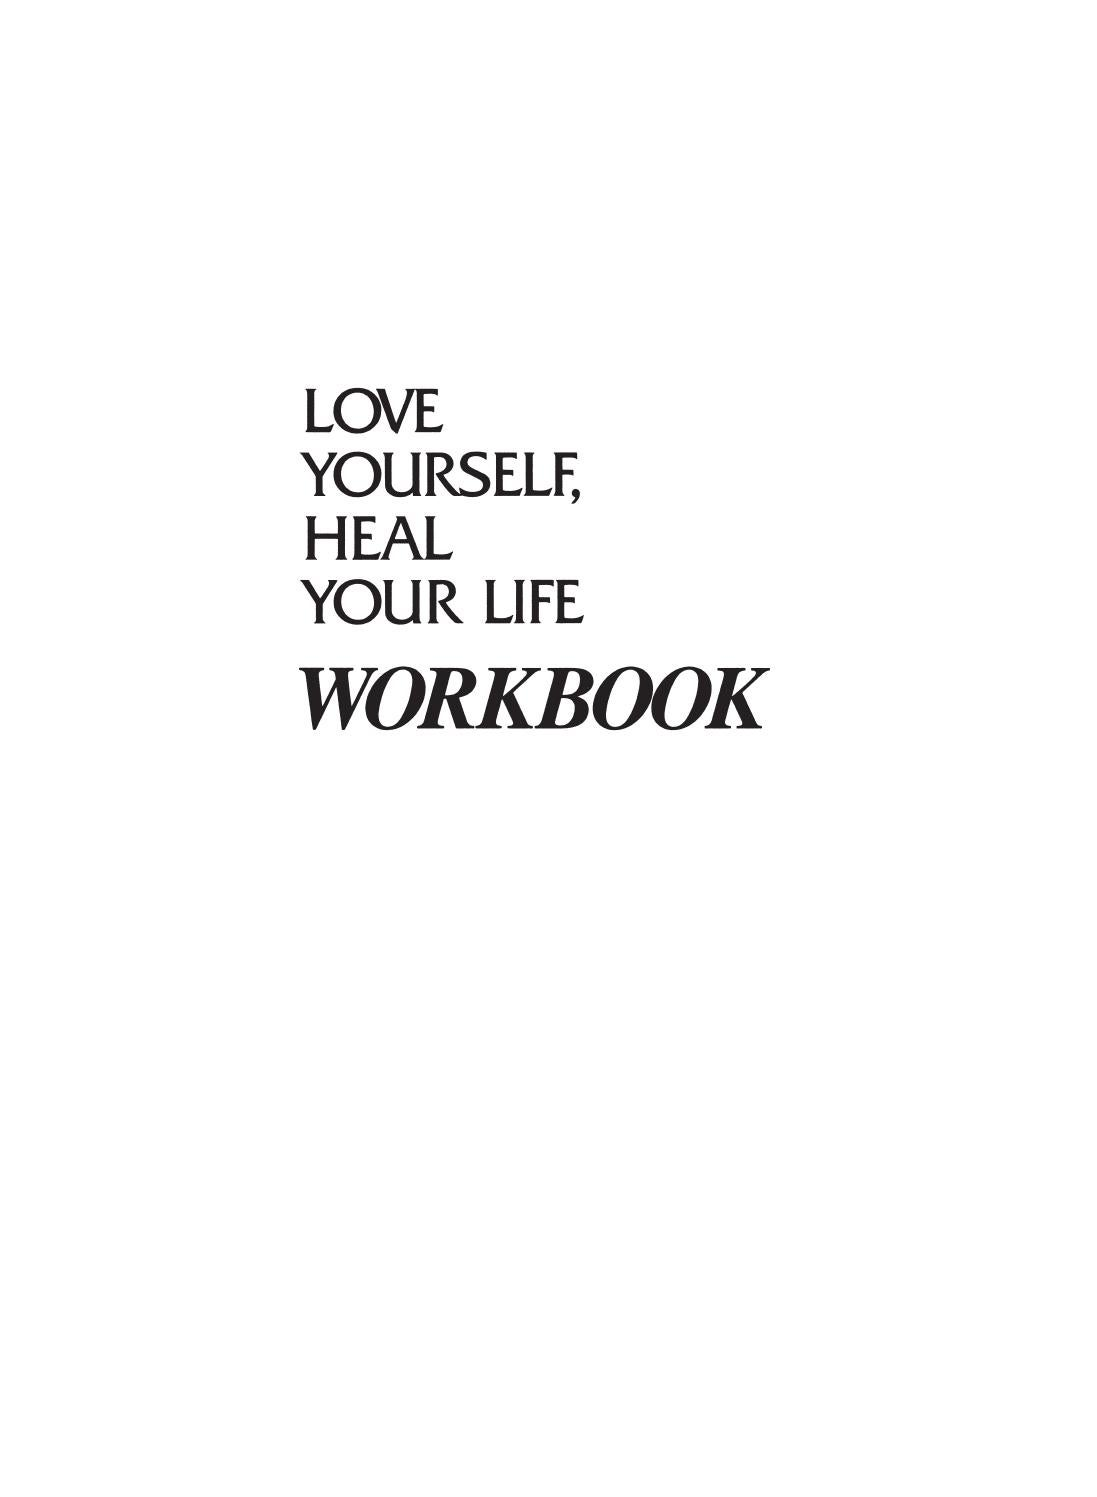 Workbooks receiving love workbook : Love Yourself Heal Your Life Workbook by Holisticshop.co.uk - issuu